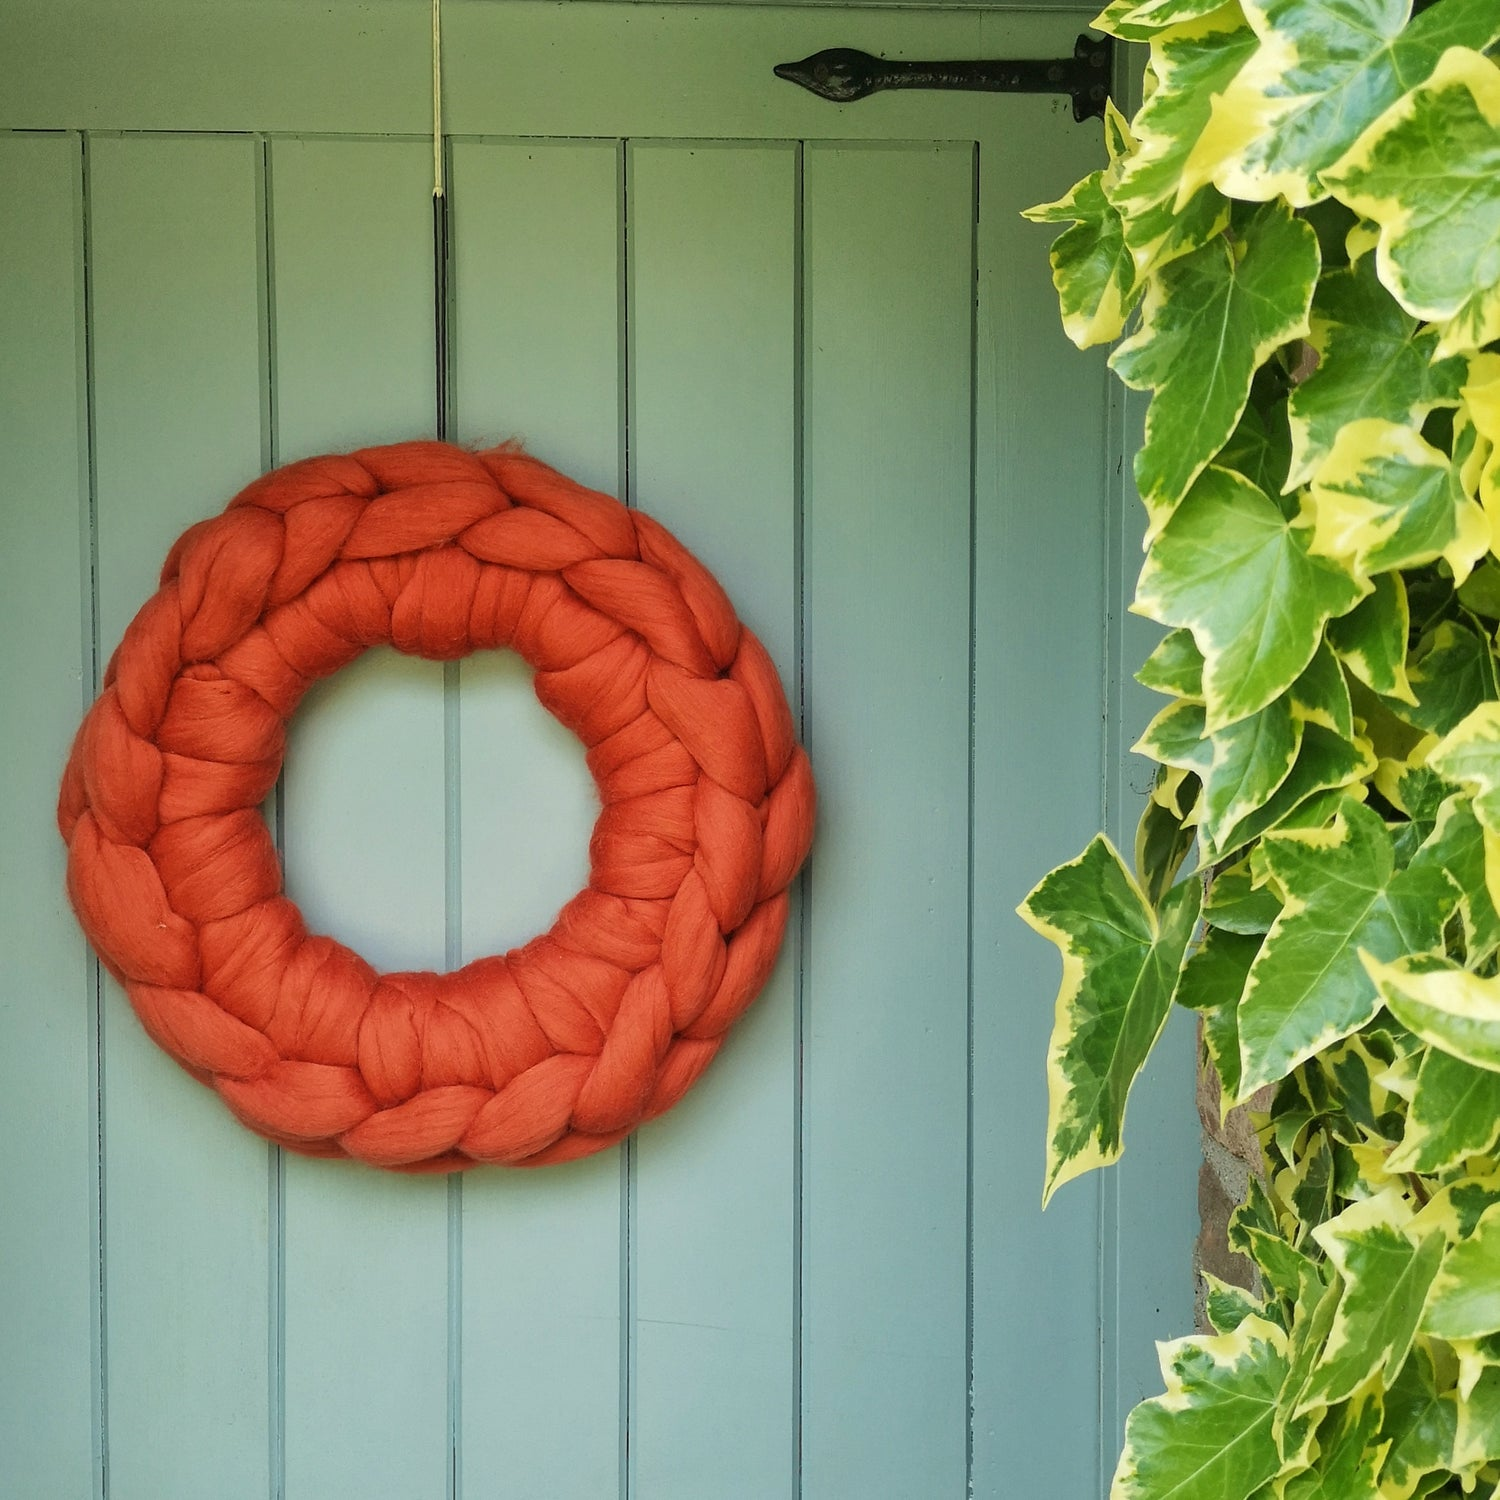 Image of Crocheted wreaths